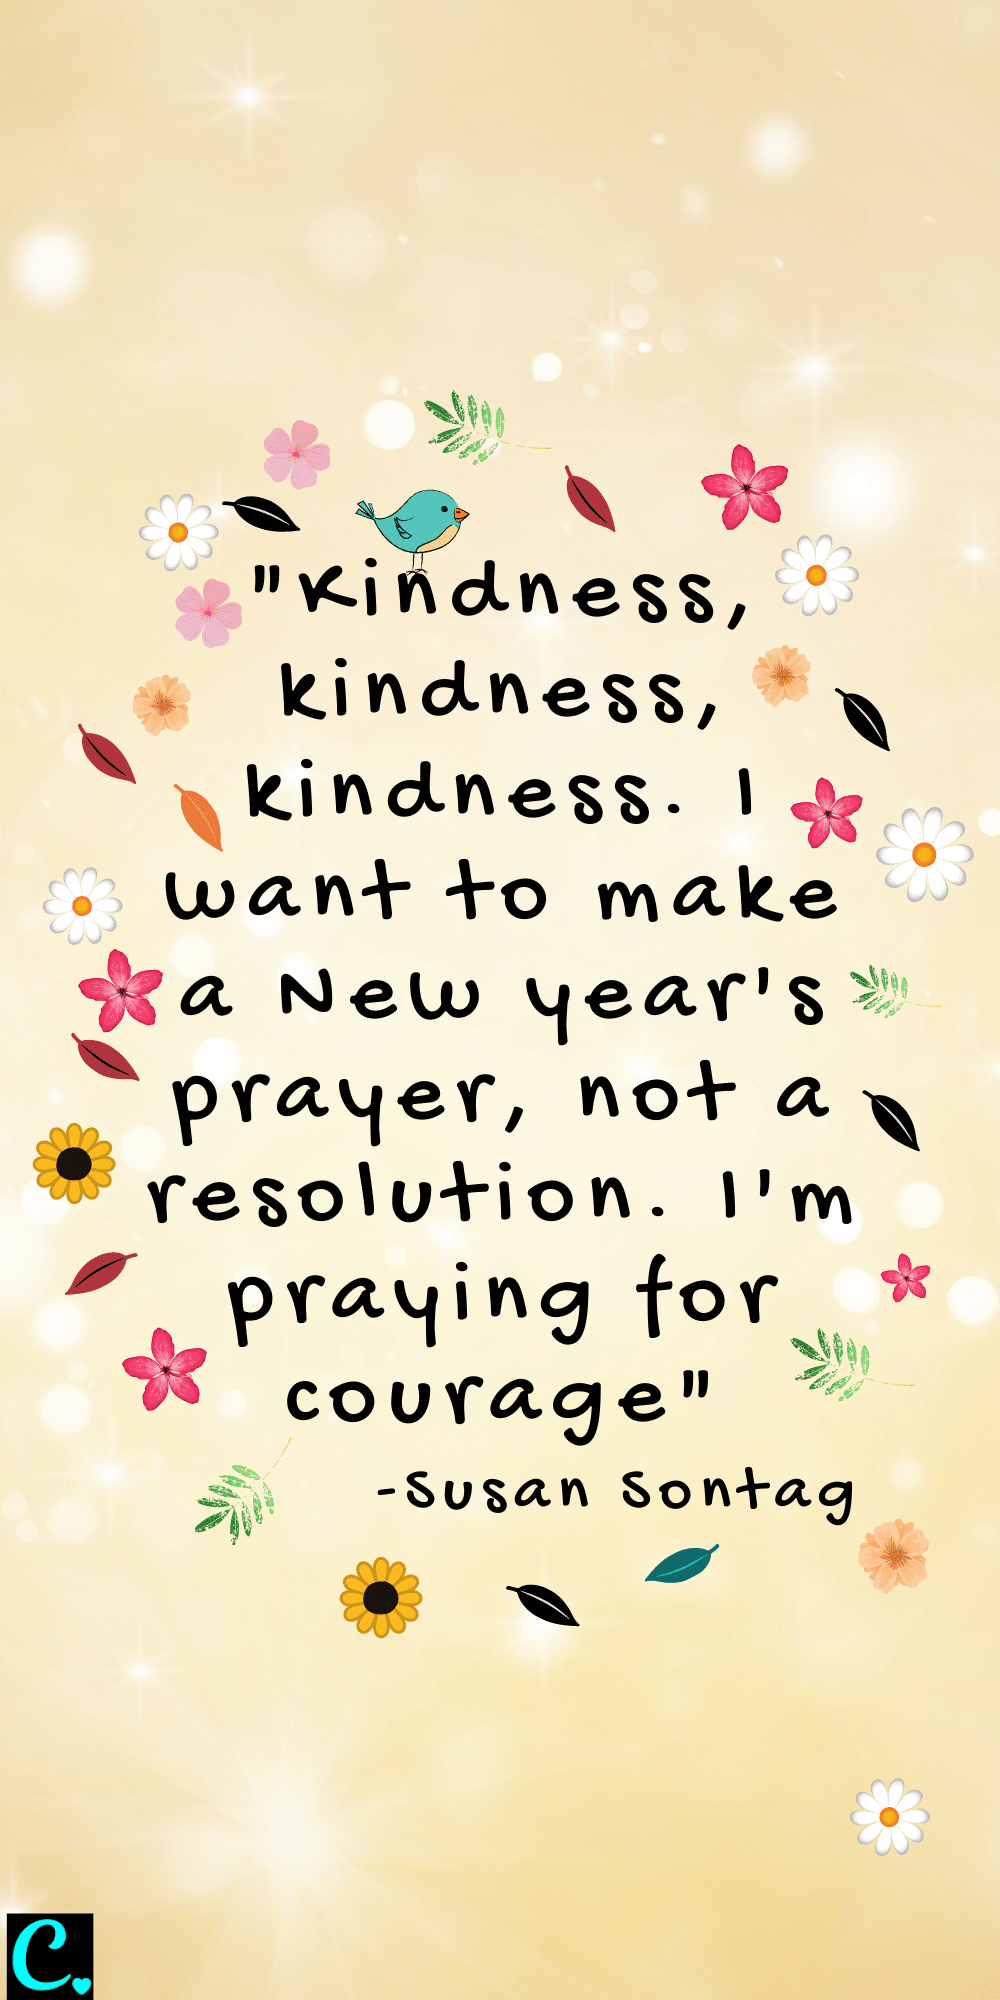 """""""Kindness, kindness, kindness. I want to make a New Year's prayer, not a resolution. I'm praying for courage"""" - Susan Sontag"""